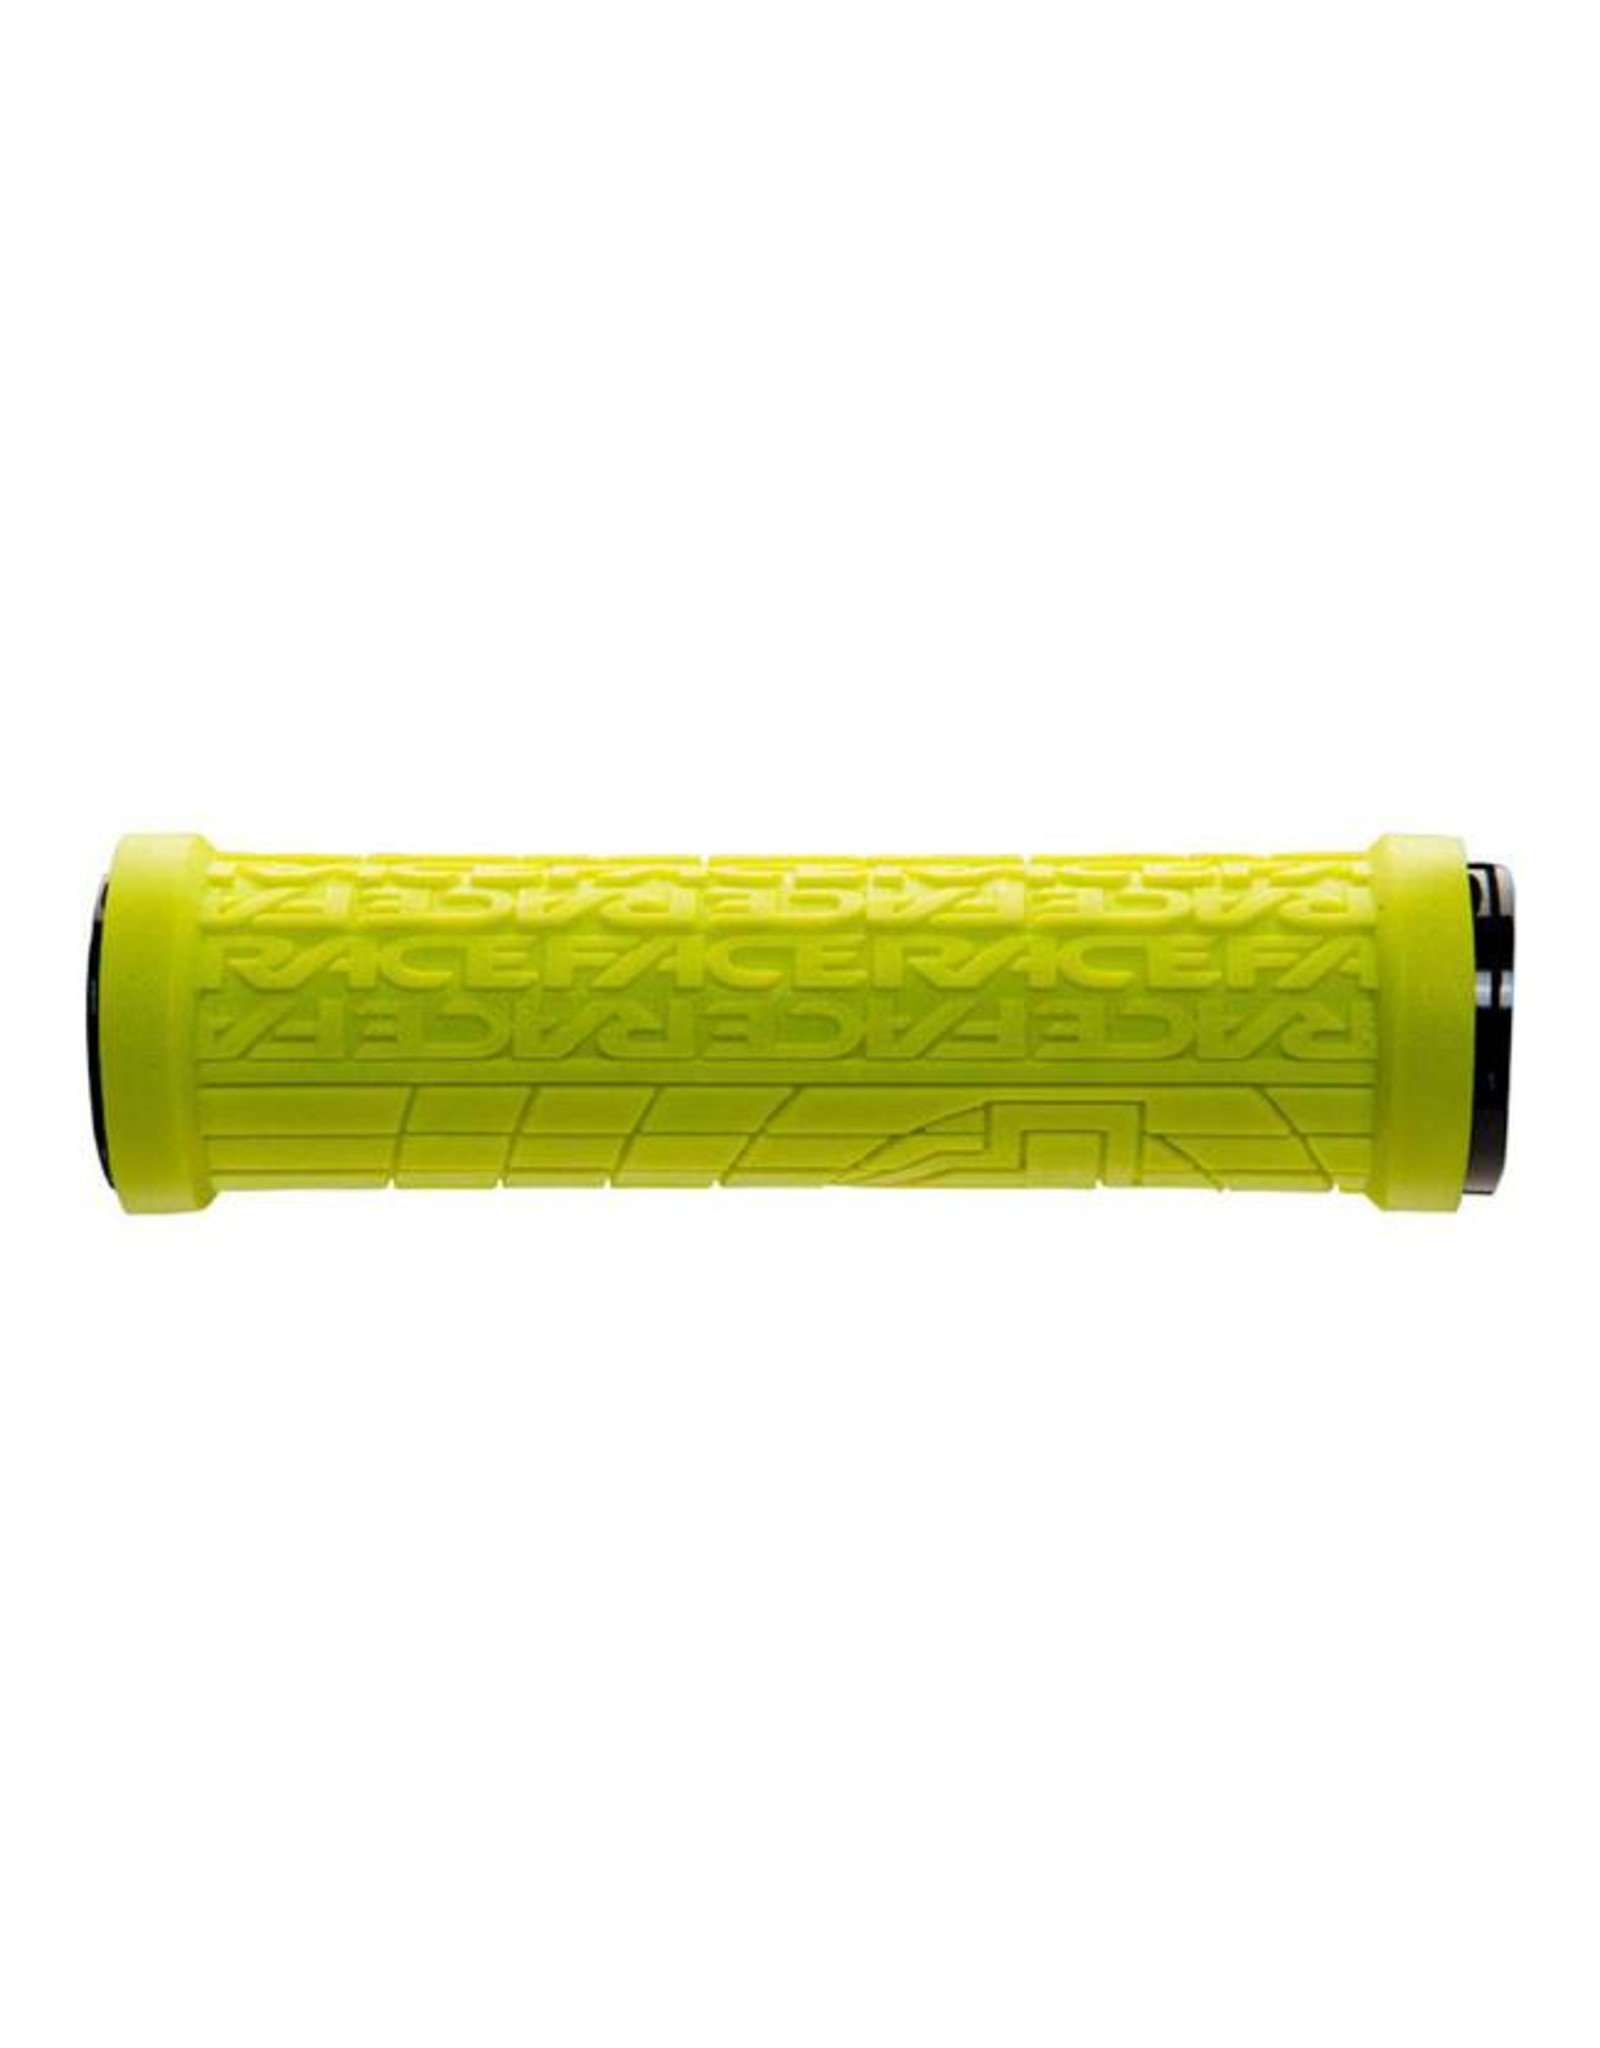 RaceFace RaceFace Grippler 33mm Lock-On Grip Yellow